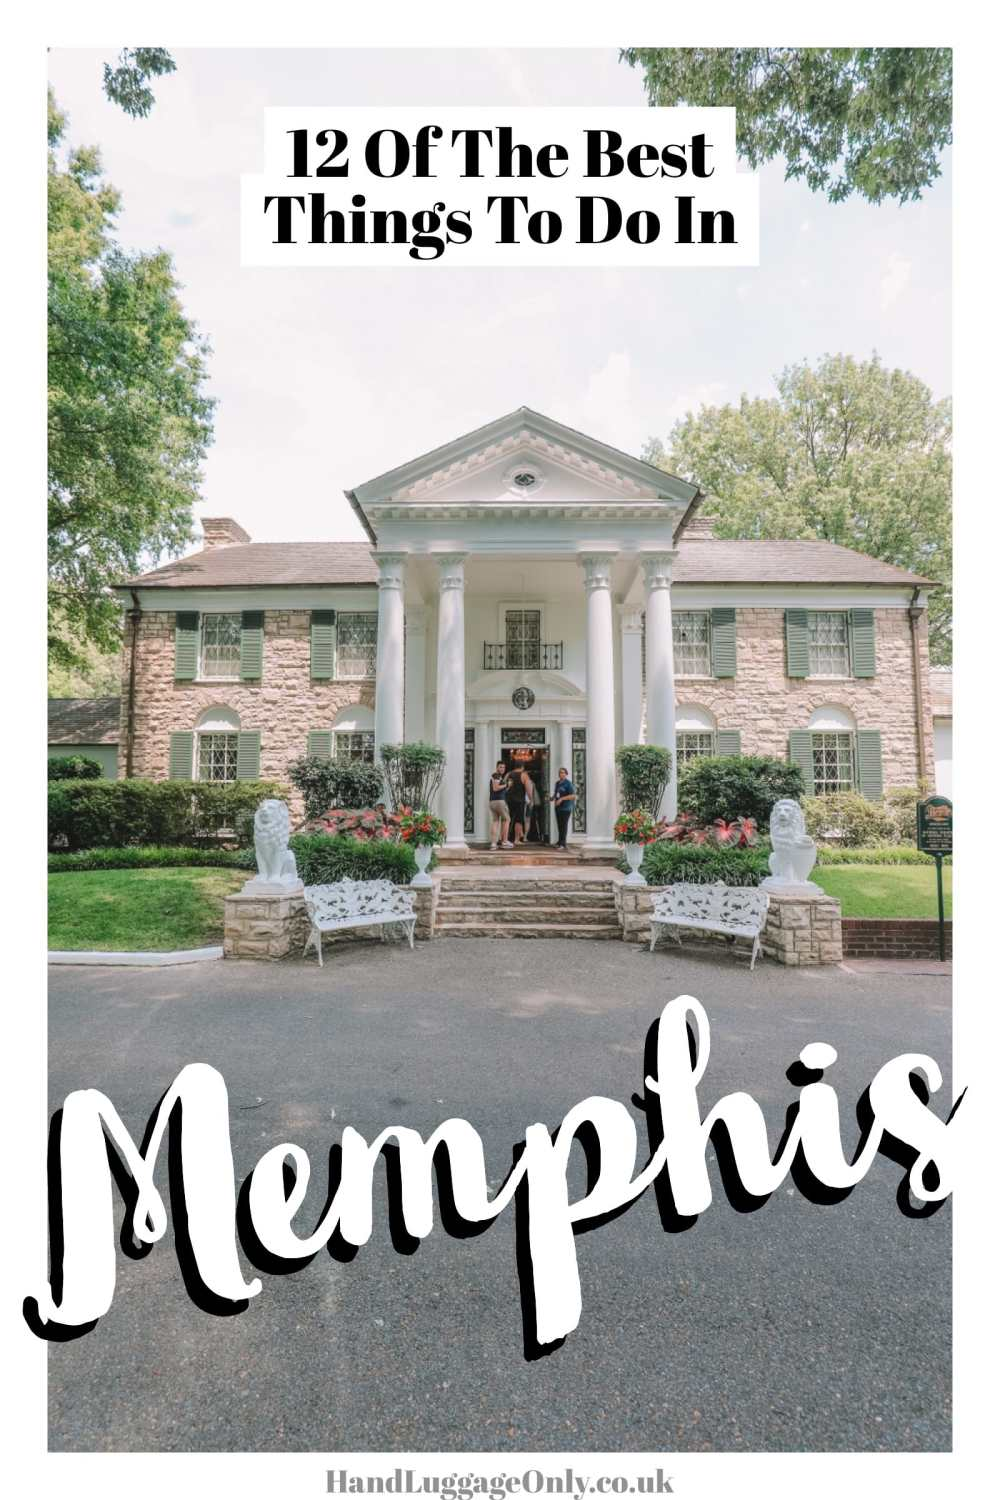 12 of the best things to do in Memphis, Tennessee